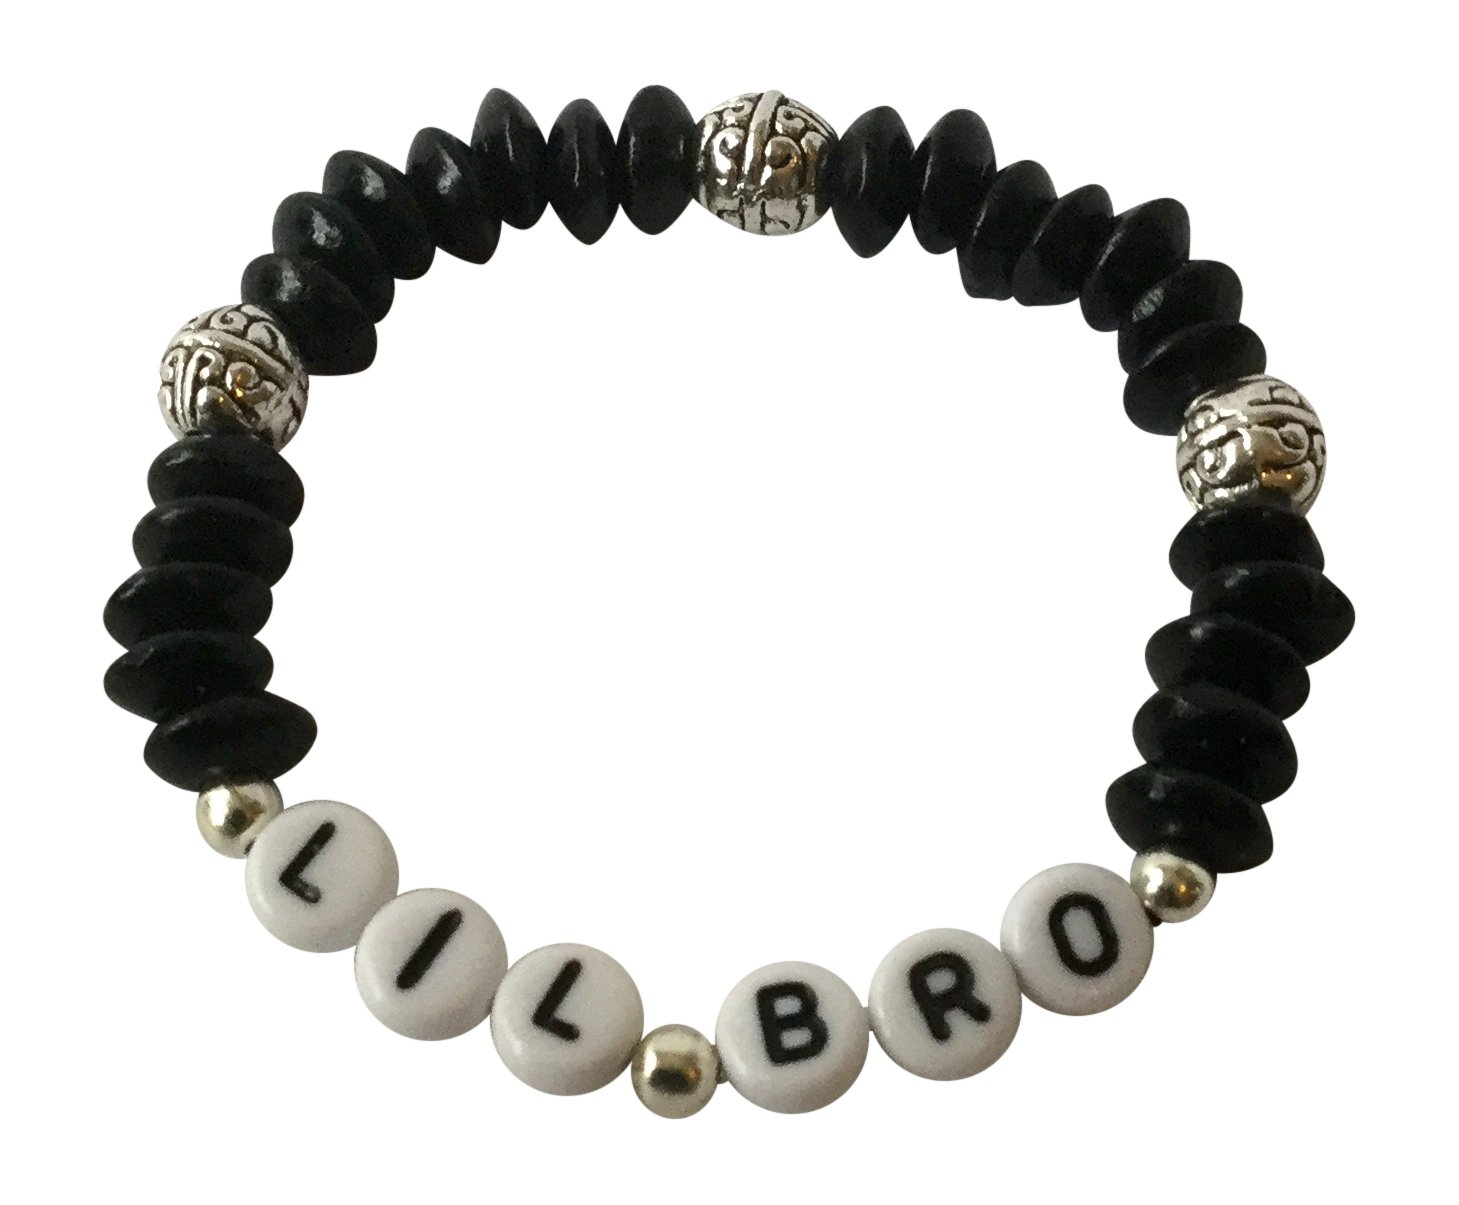 PERSONALISED Little BROTHER Gift BRACELET Lil Bro Boys Jewellery black beads Gifts At Dawn (S (approx 3-6 years))